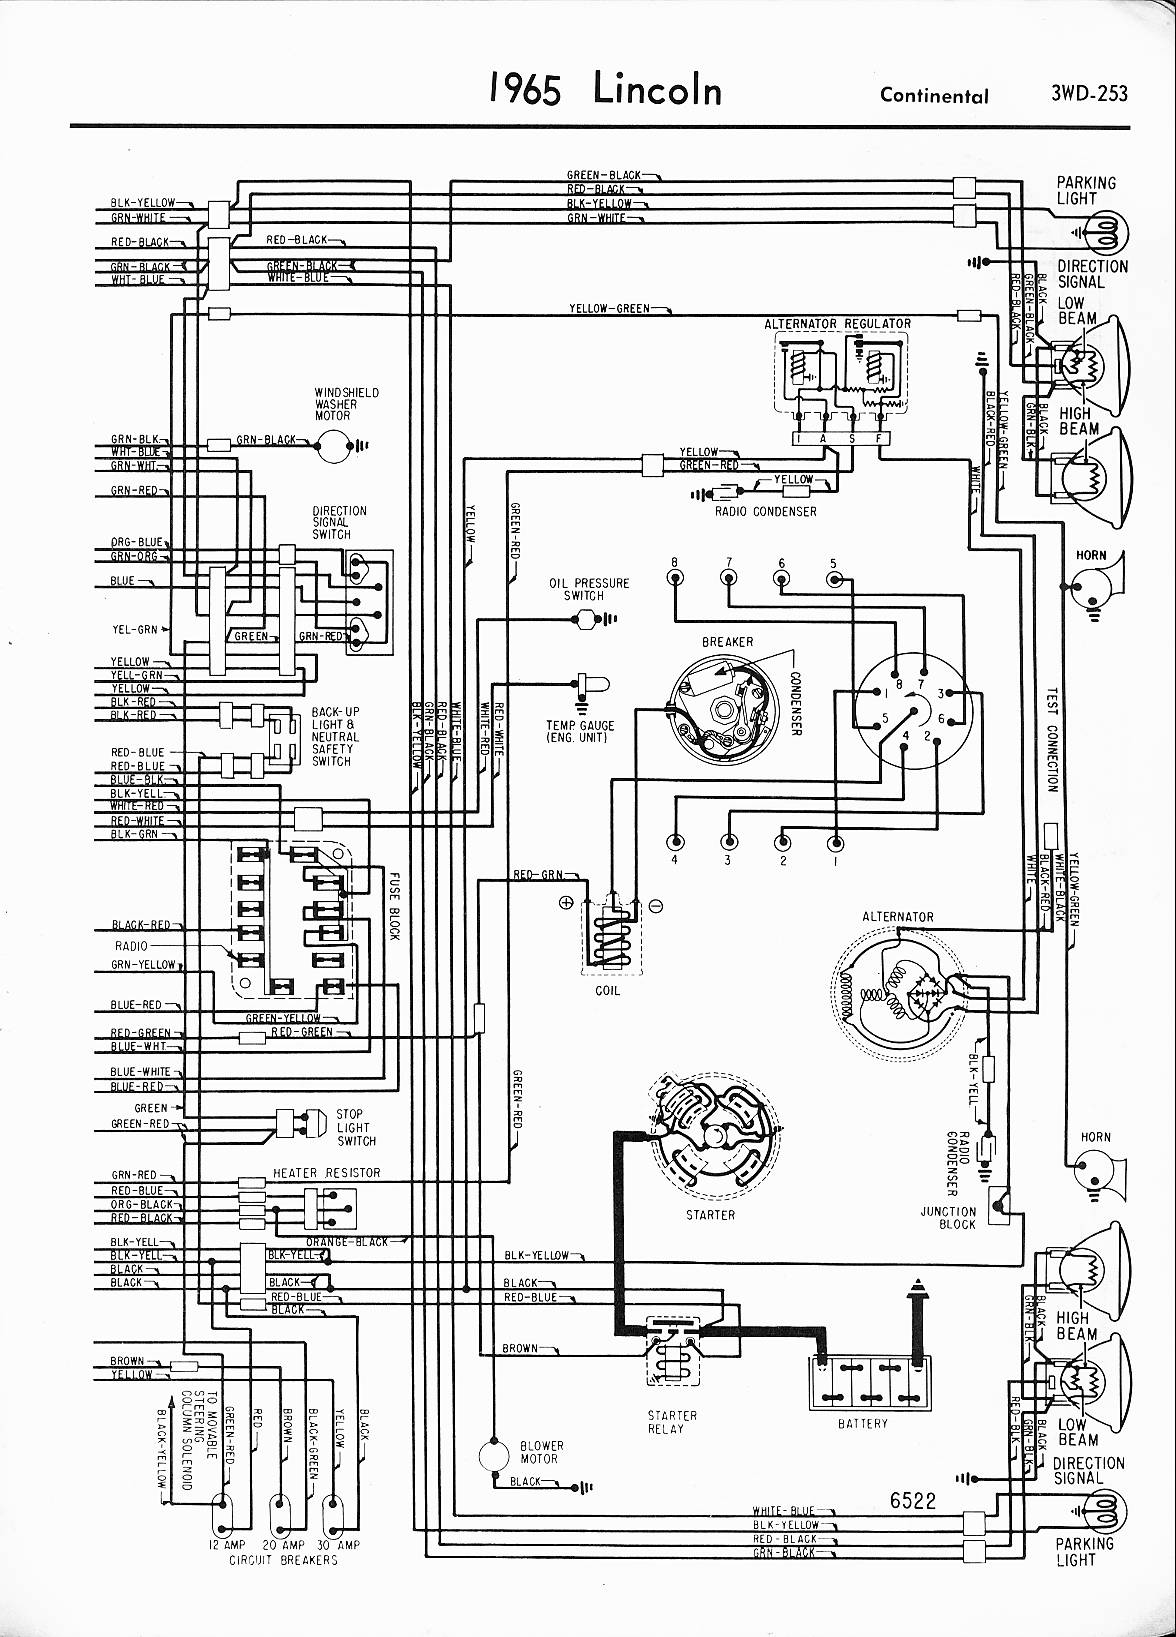 1997 Lincoln Town Car Wiring Diagrams Library Diagram For 1957 1965 Continental Throttle Right Half